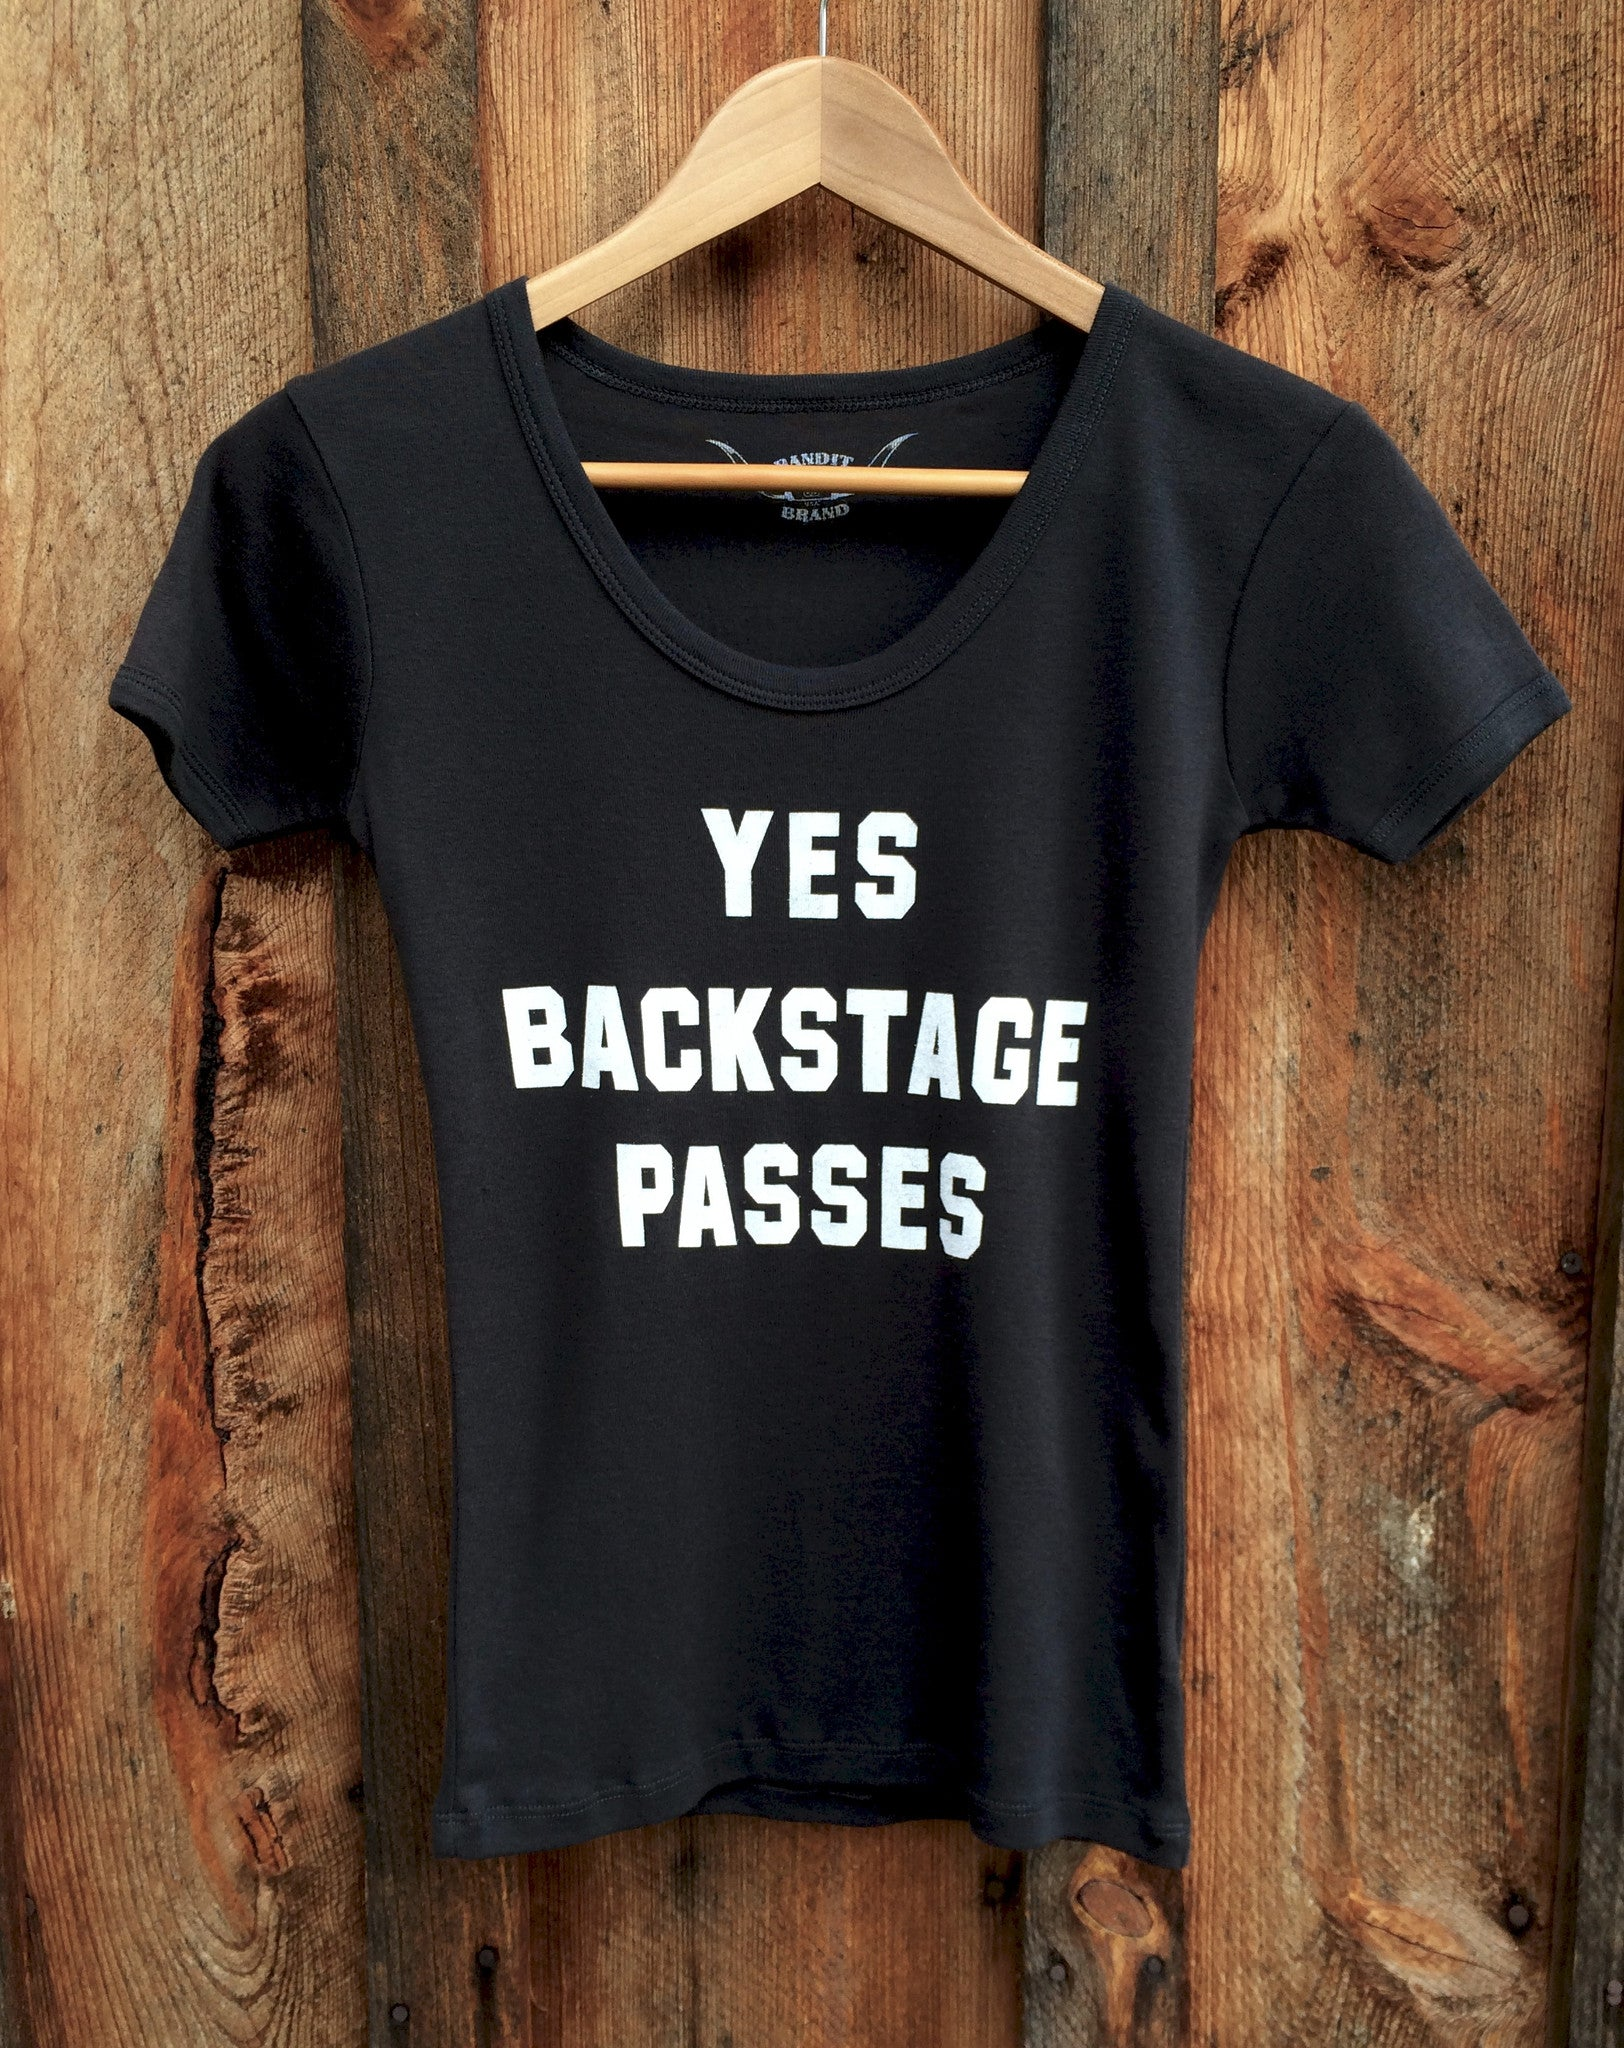 Yes Backstage Passes 70's Tee Blk/Wht